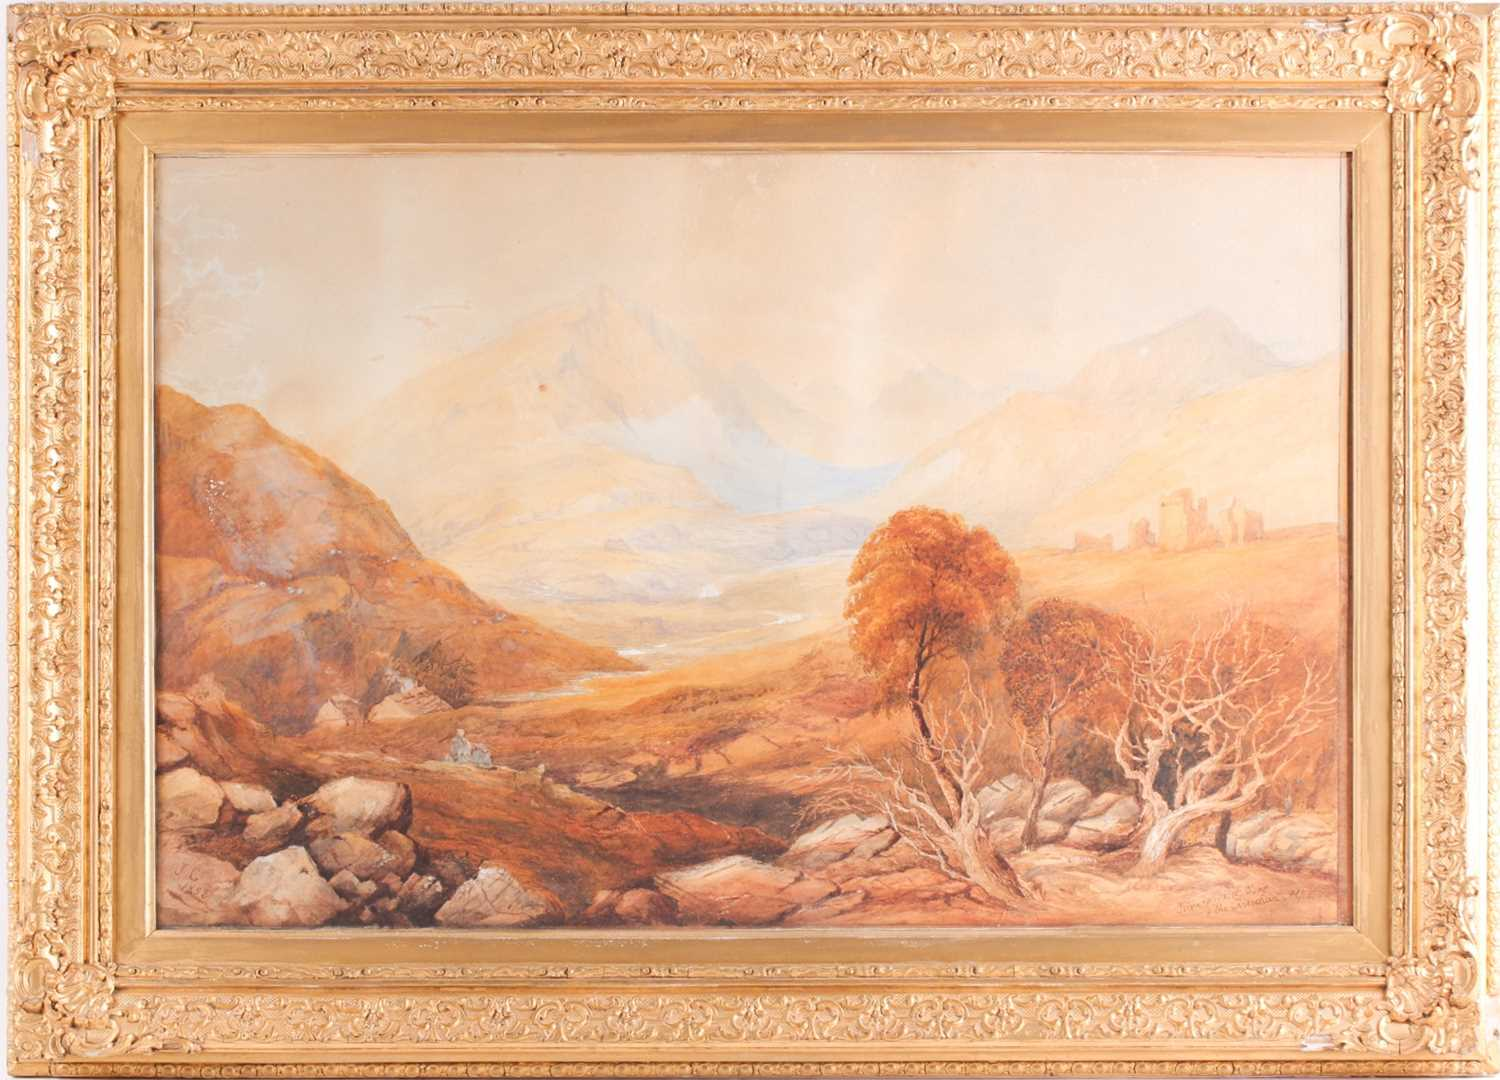 19th century Scottish school, a mountainous landscape, depicting the remains of a fort in the